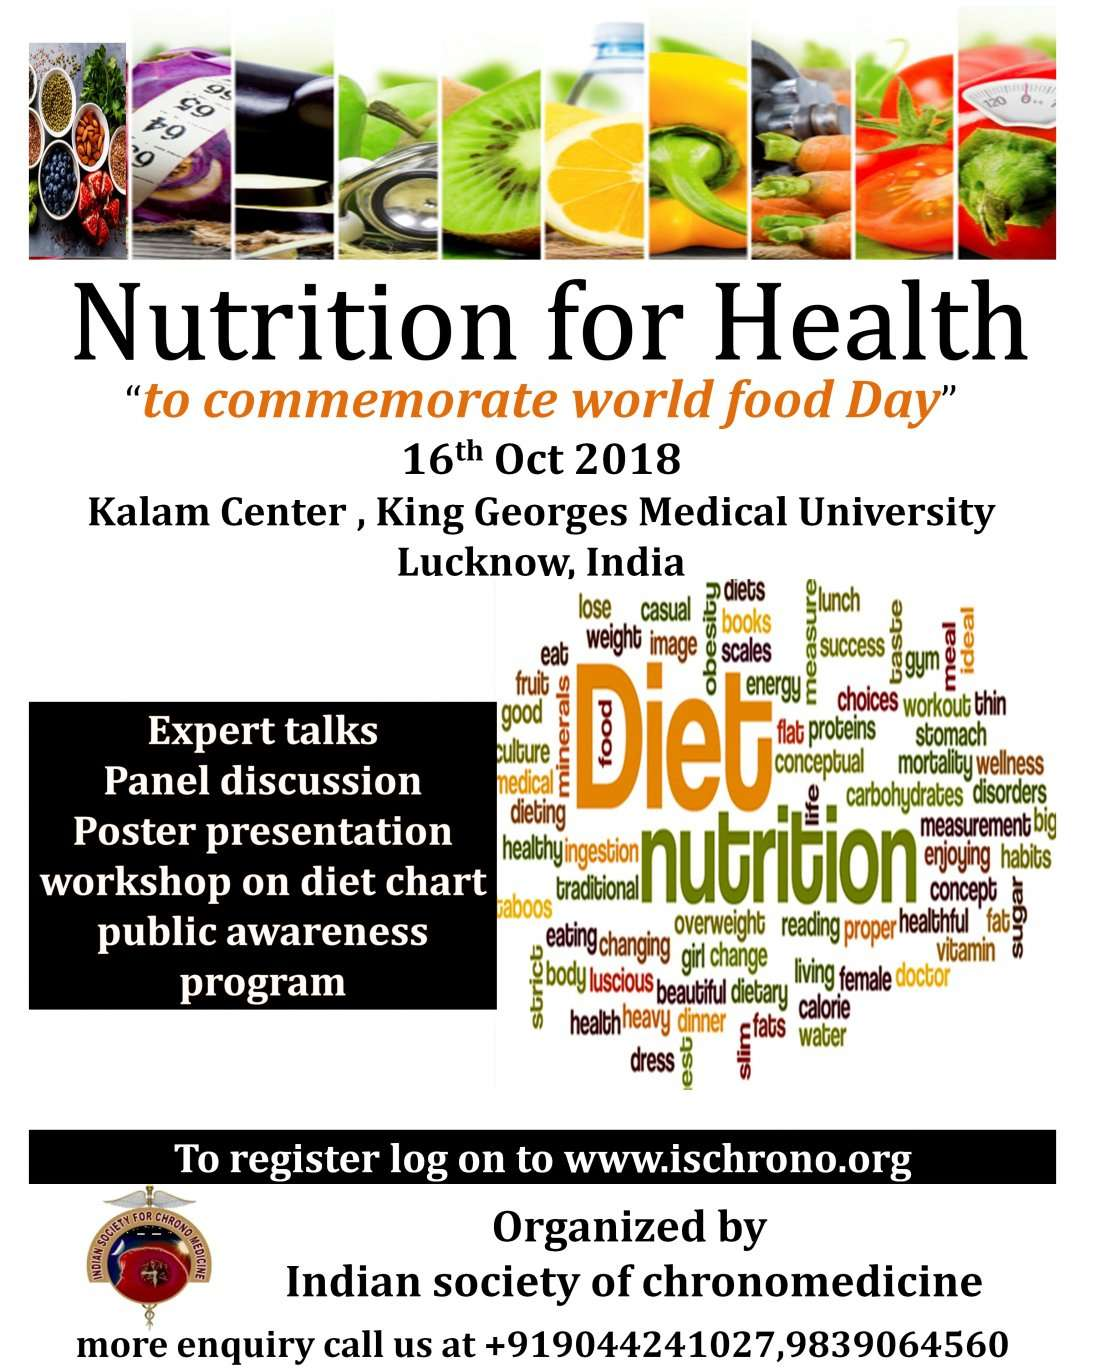 Health for Nutrition - to commemorate World food day 2018